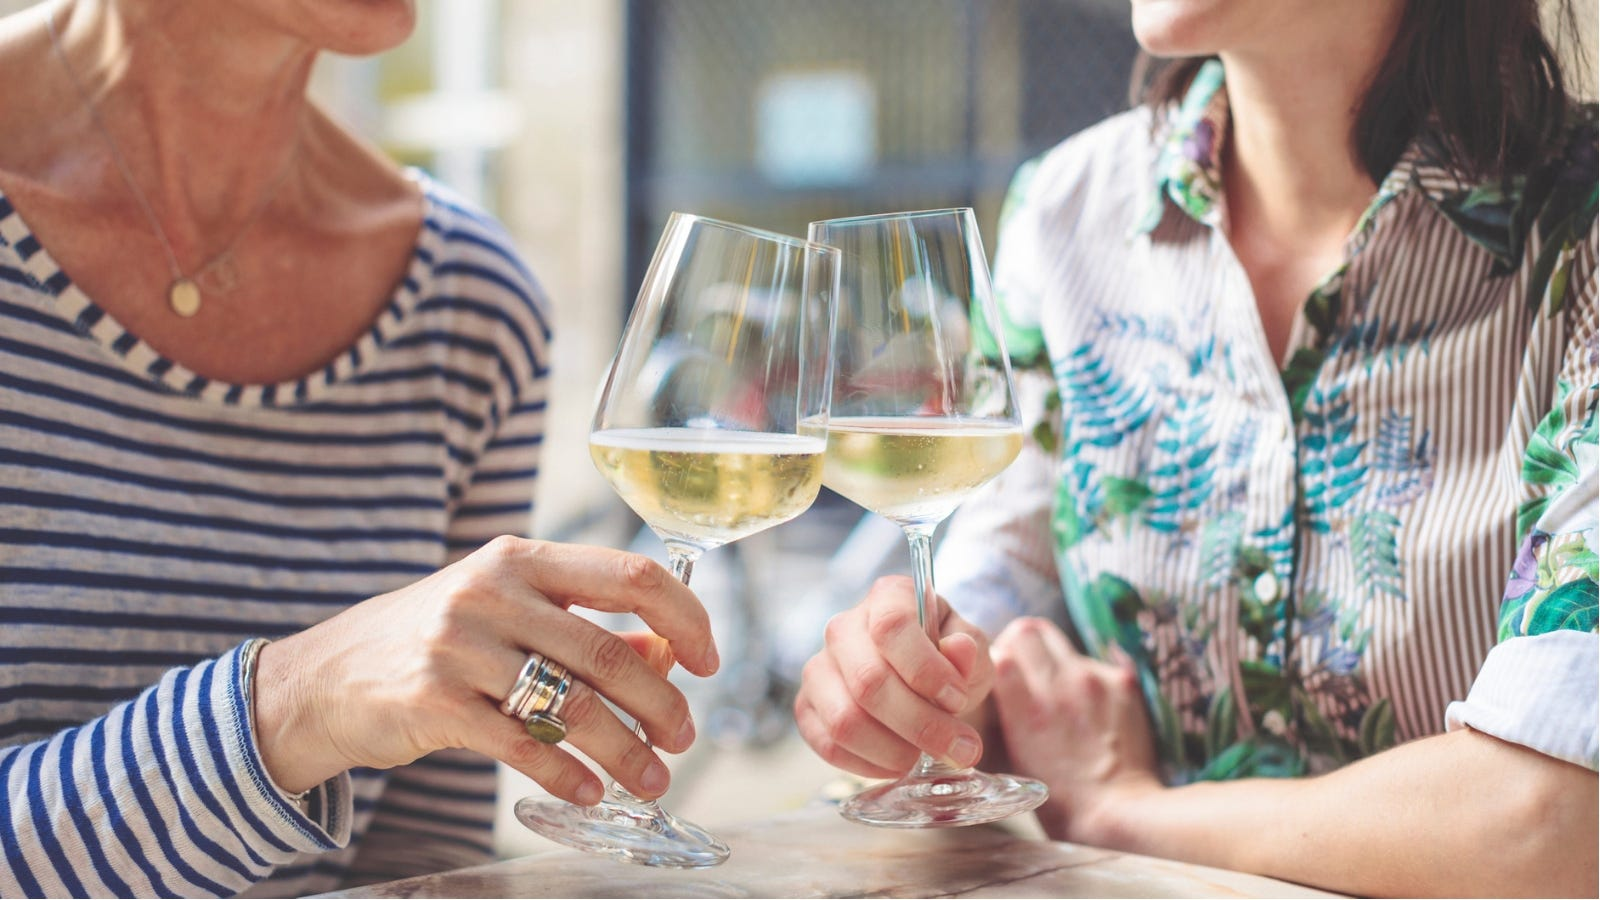 Still need a Mother's Day gift? This wine subscription service has you covered